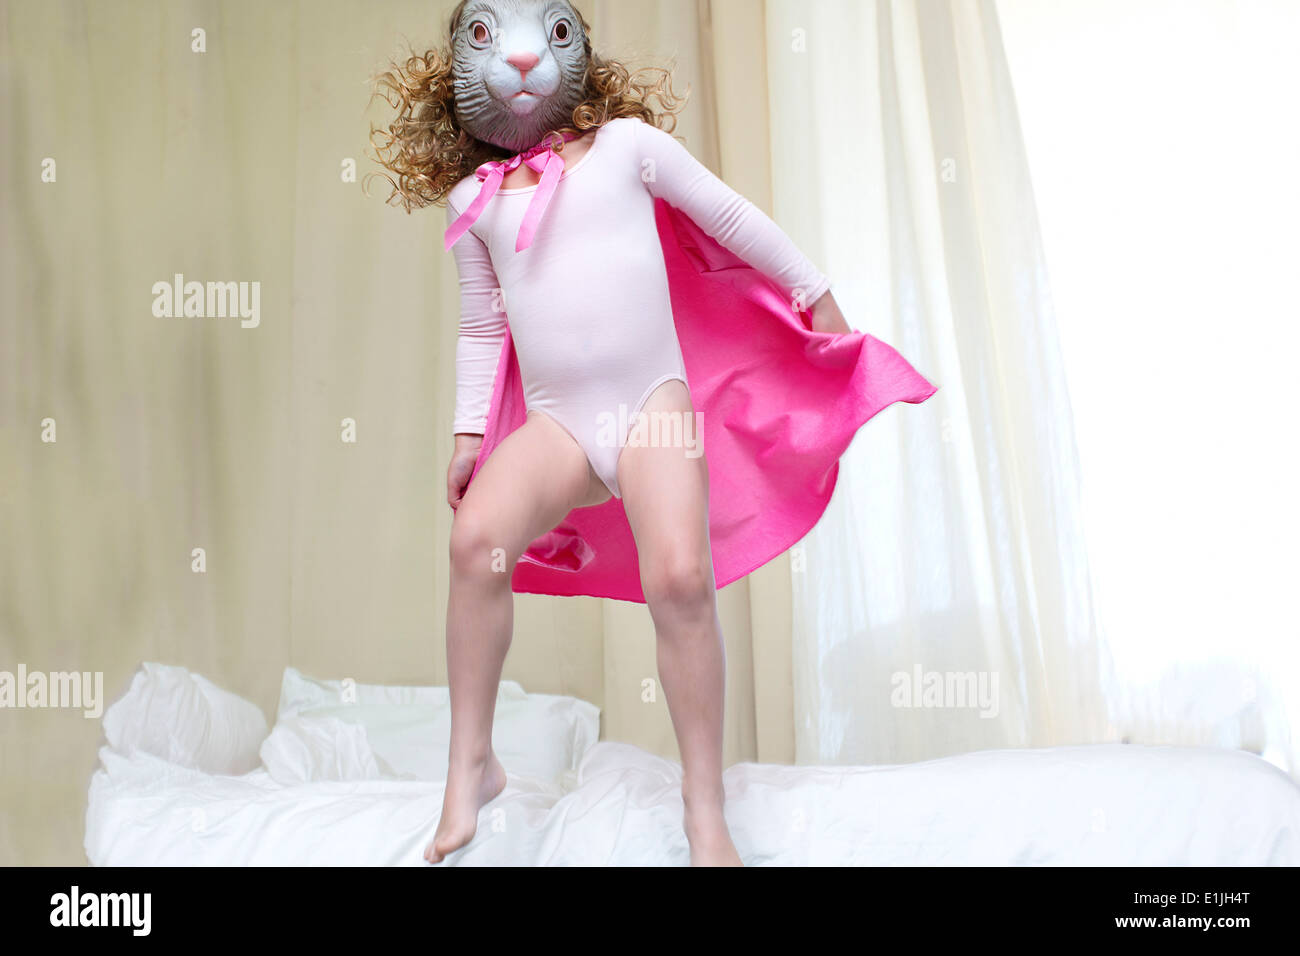 Young girl dressed up as a rabbit princess dancing on bed - Stock Image